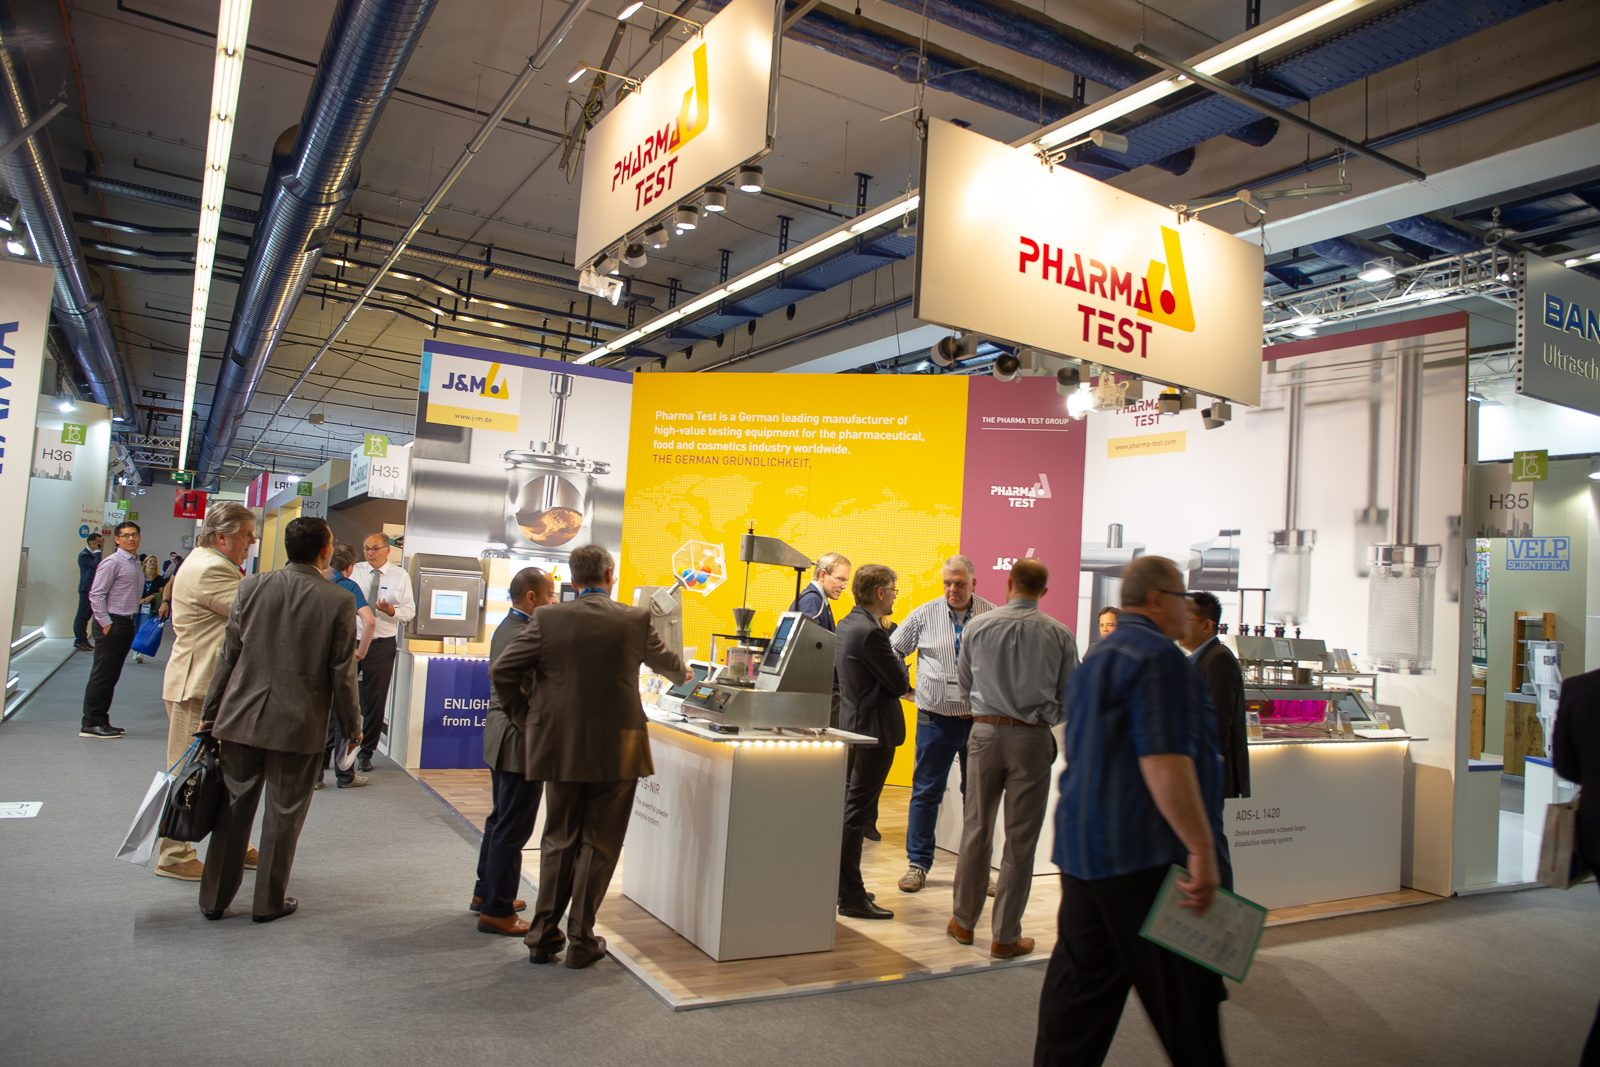 THE PHARMA TEST GROUP booth at ACHEMA 2018.